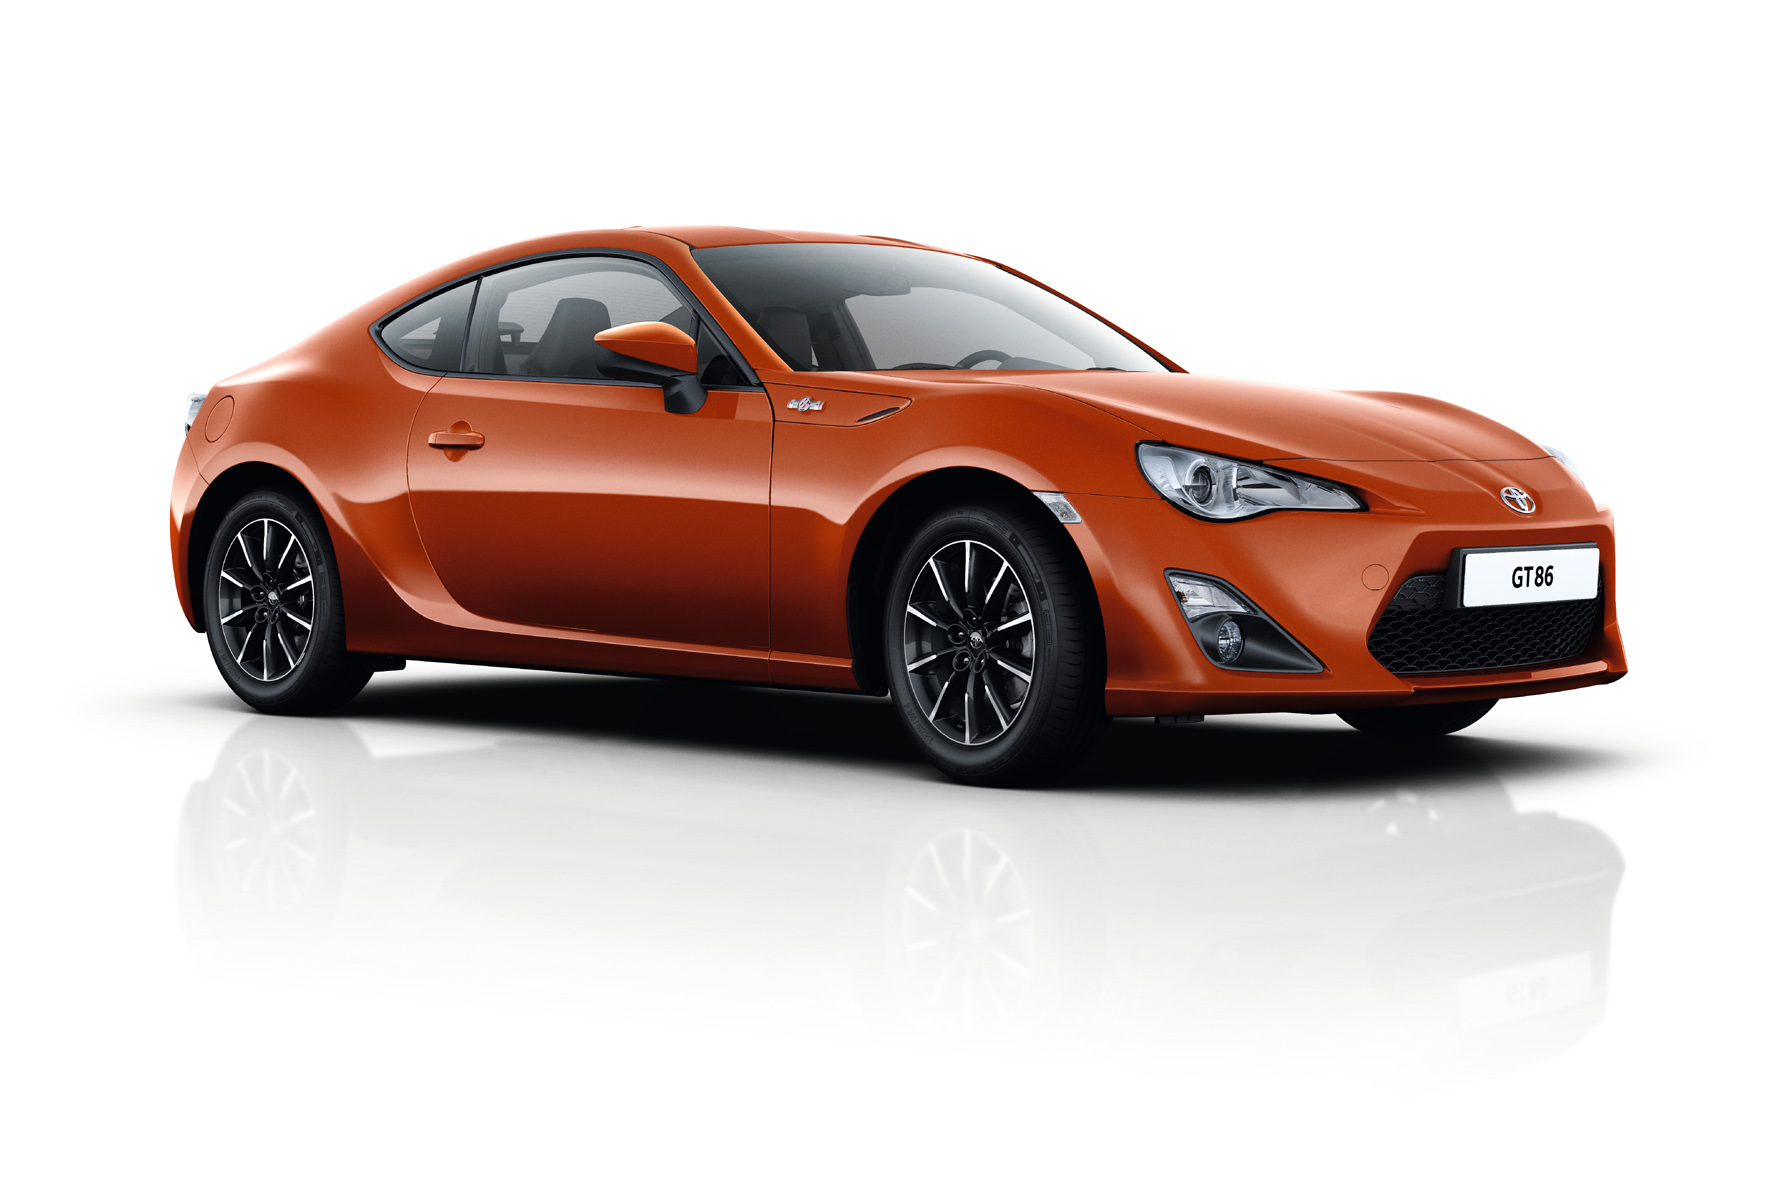 Abgespeckter Toyota GT86 ab 28.900 Euro